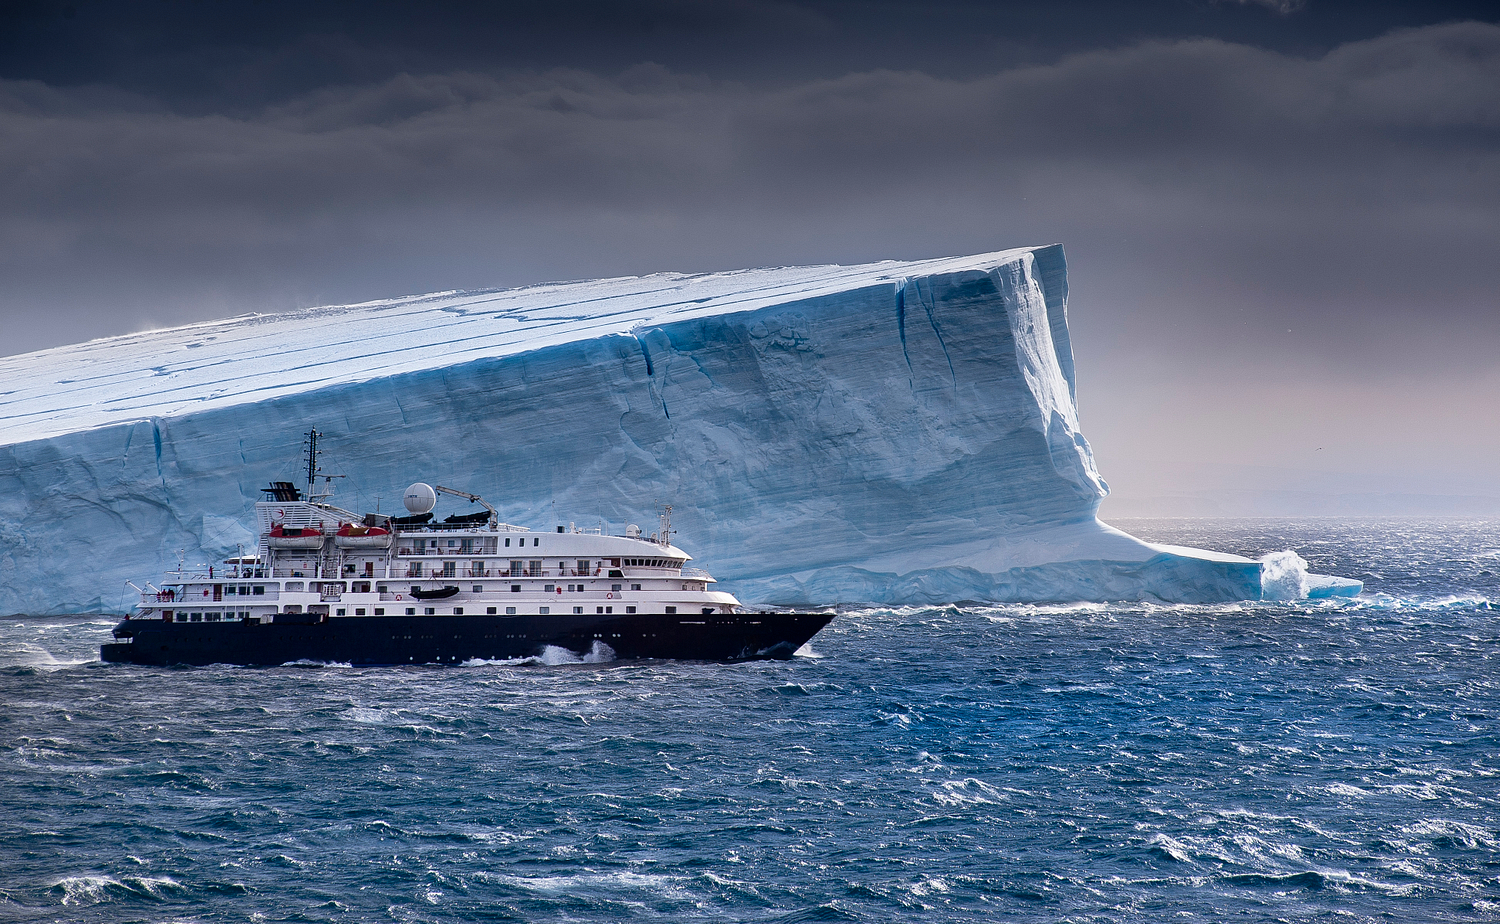 Cruise Ship in front of Iceberg in Antarctica